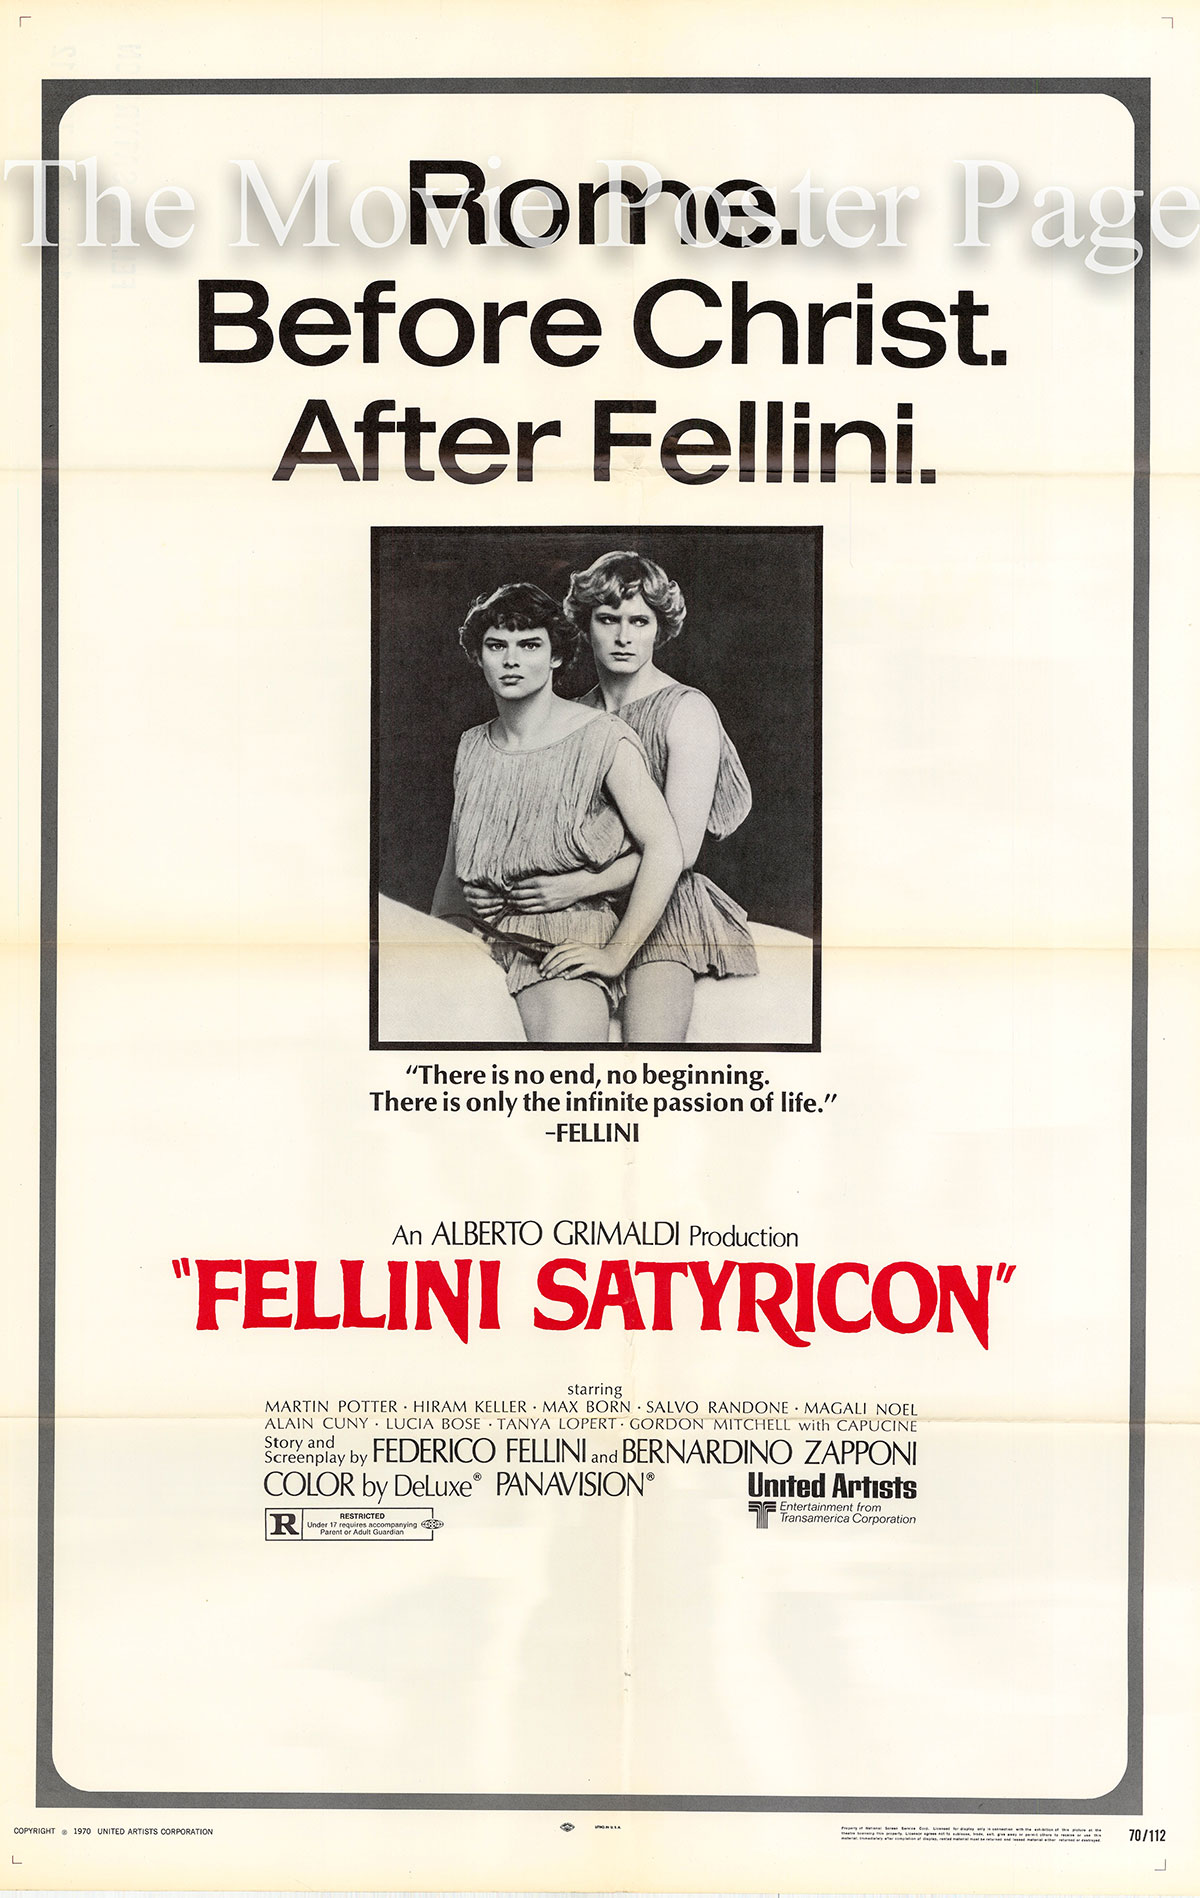 Pictured is a US one-sheet poster for the 1969 Federico Fellini film Satyricon starring Martin Potter as Encolpio.